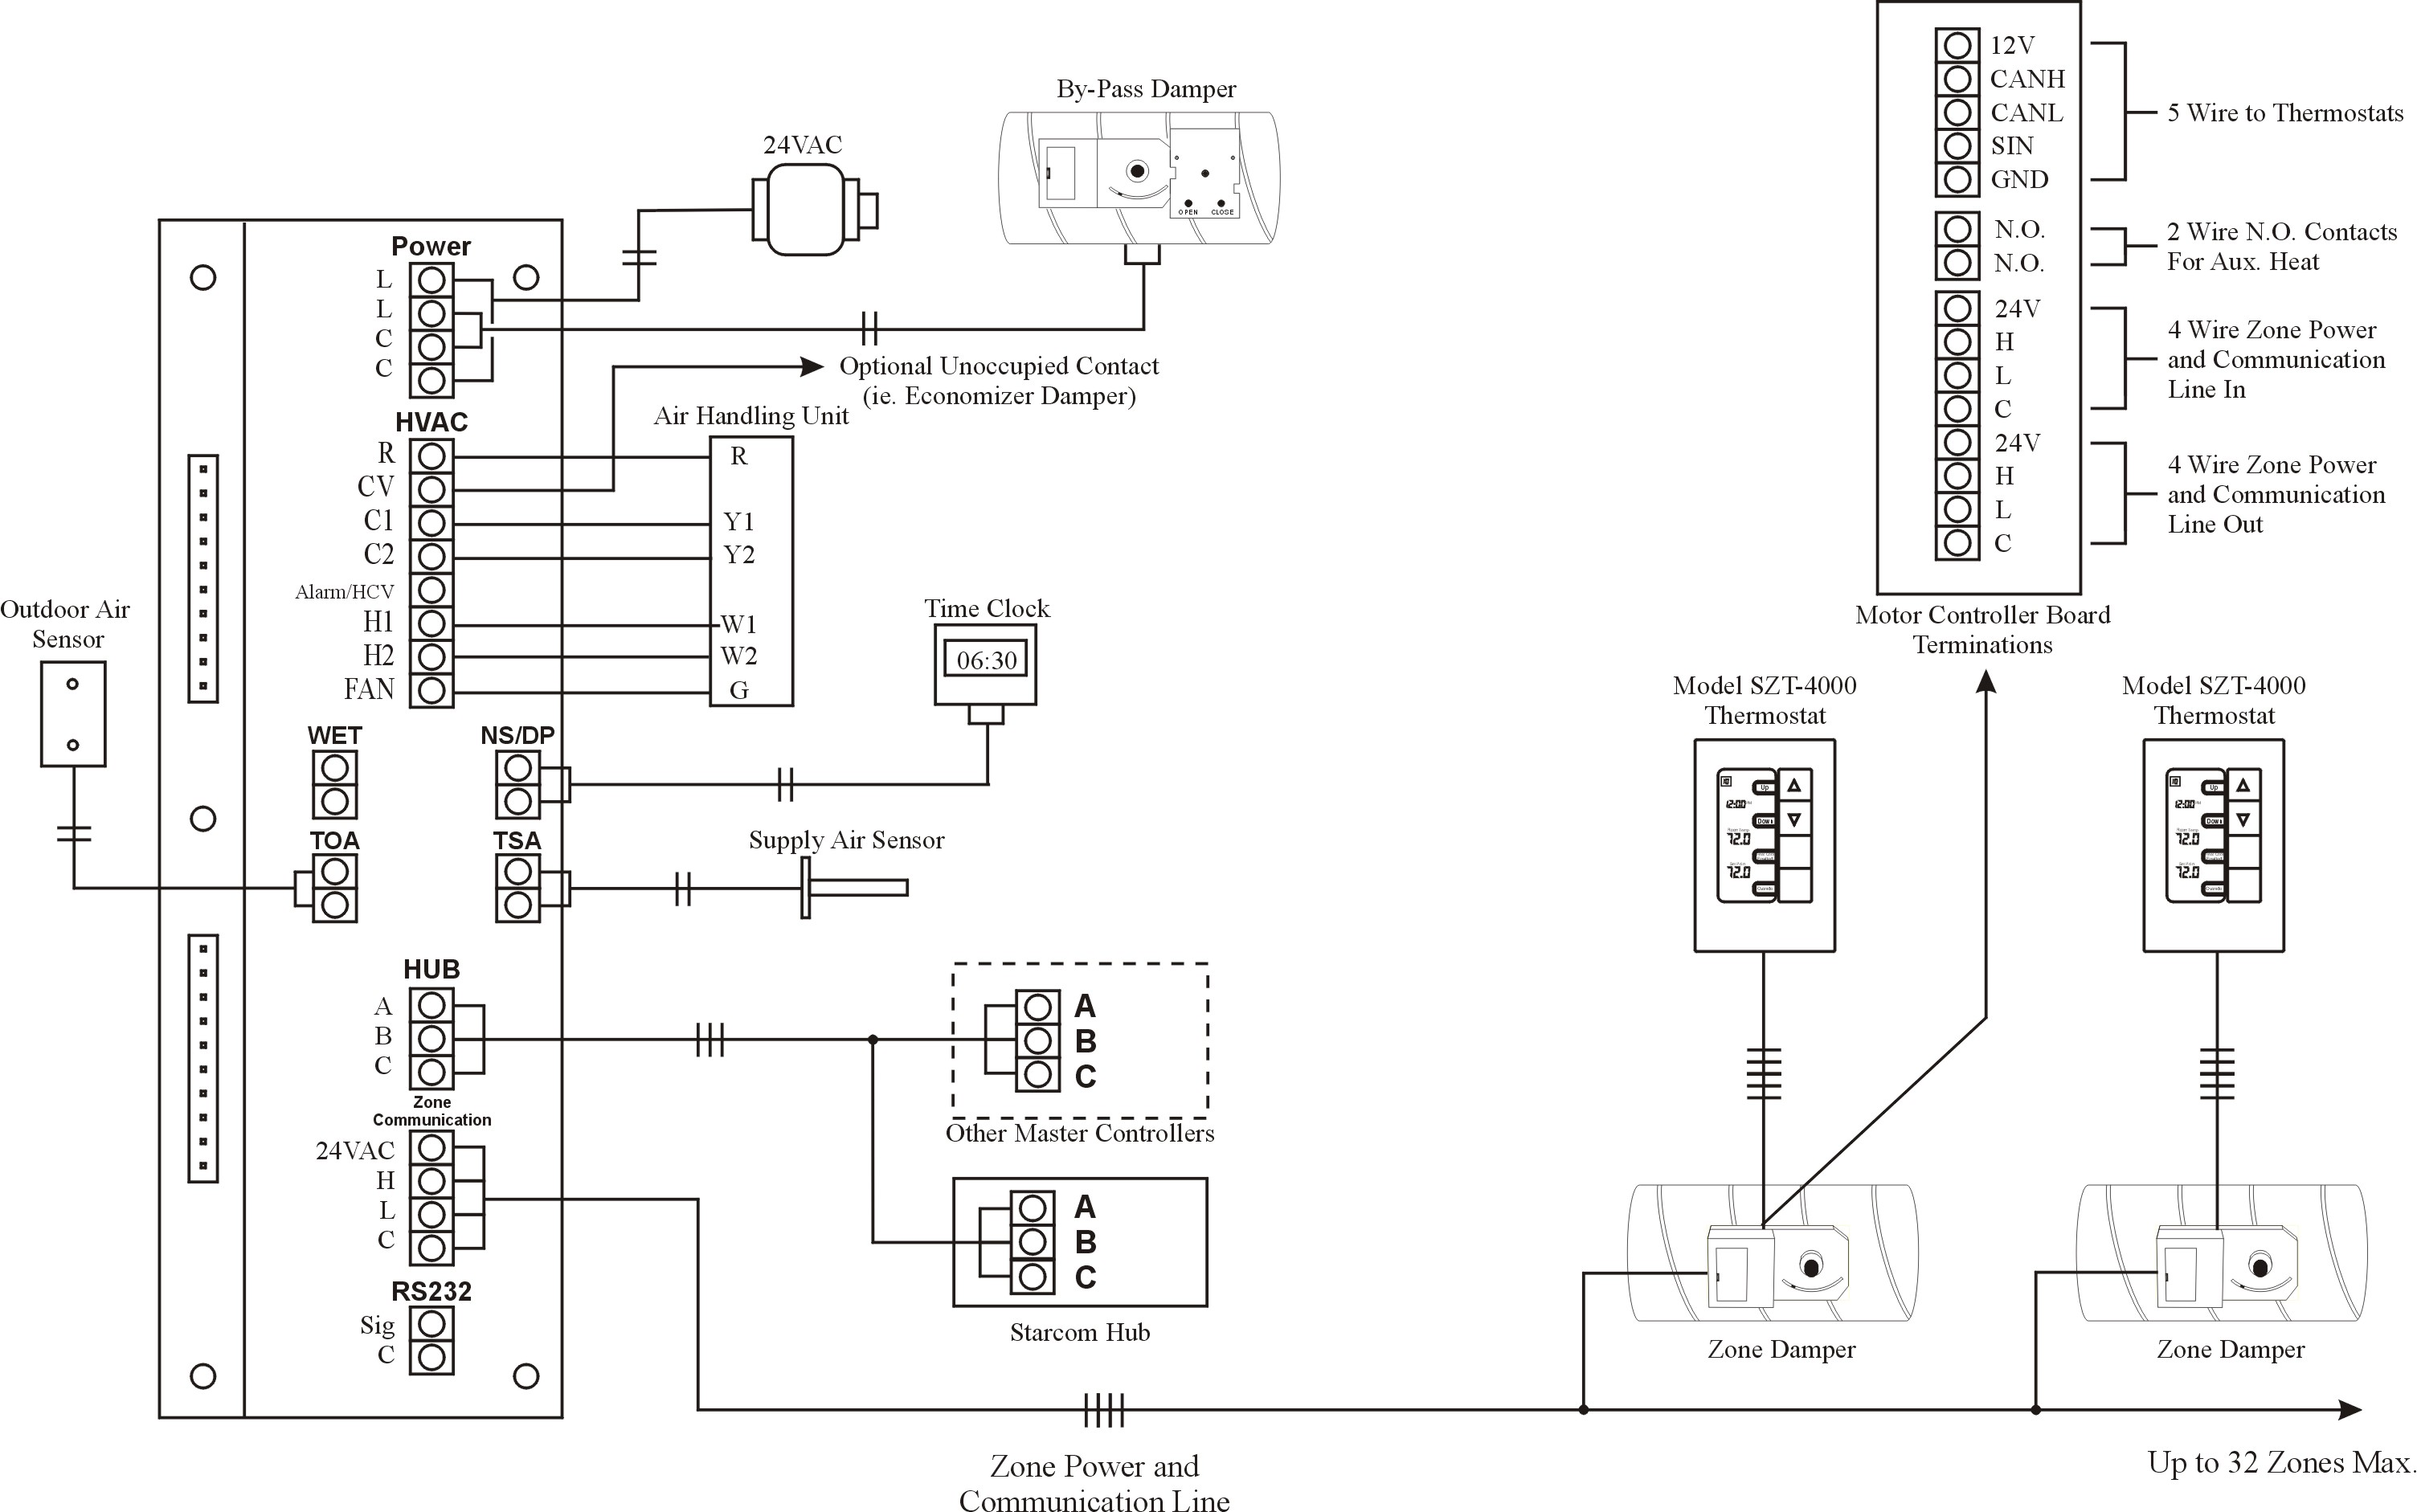 Wiring Diagrams on hvac transformer